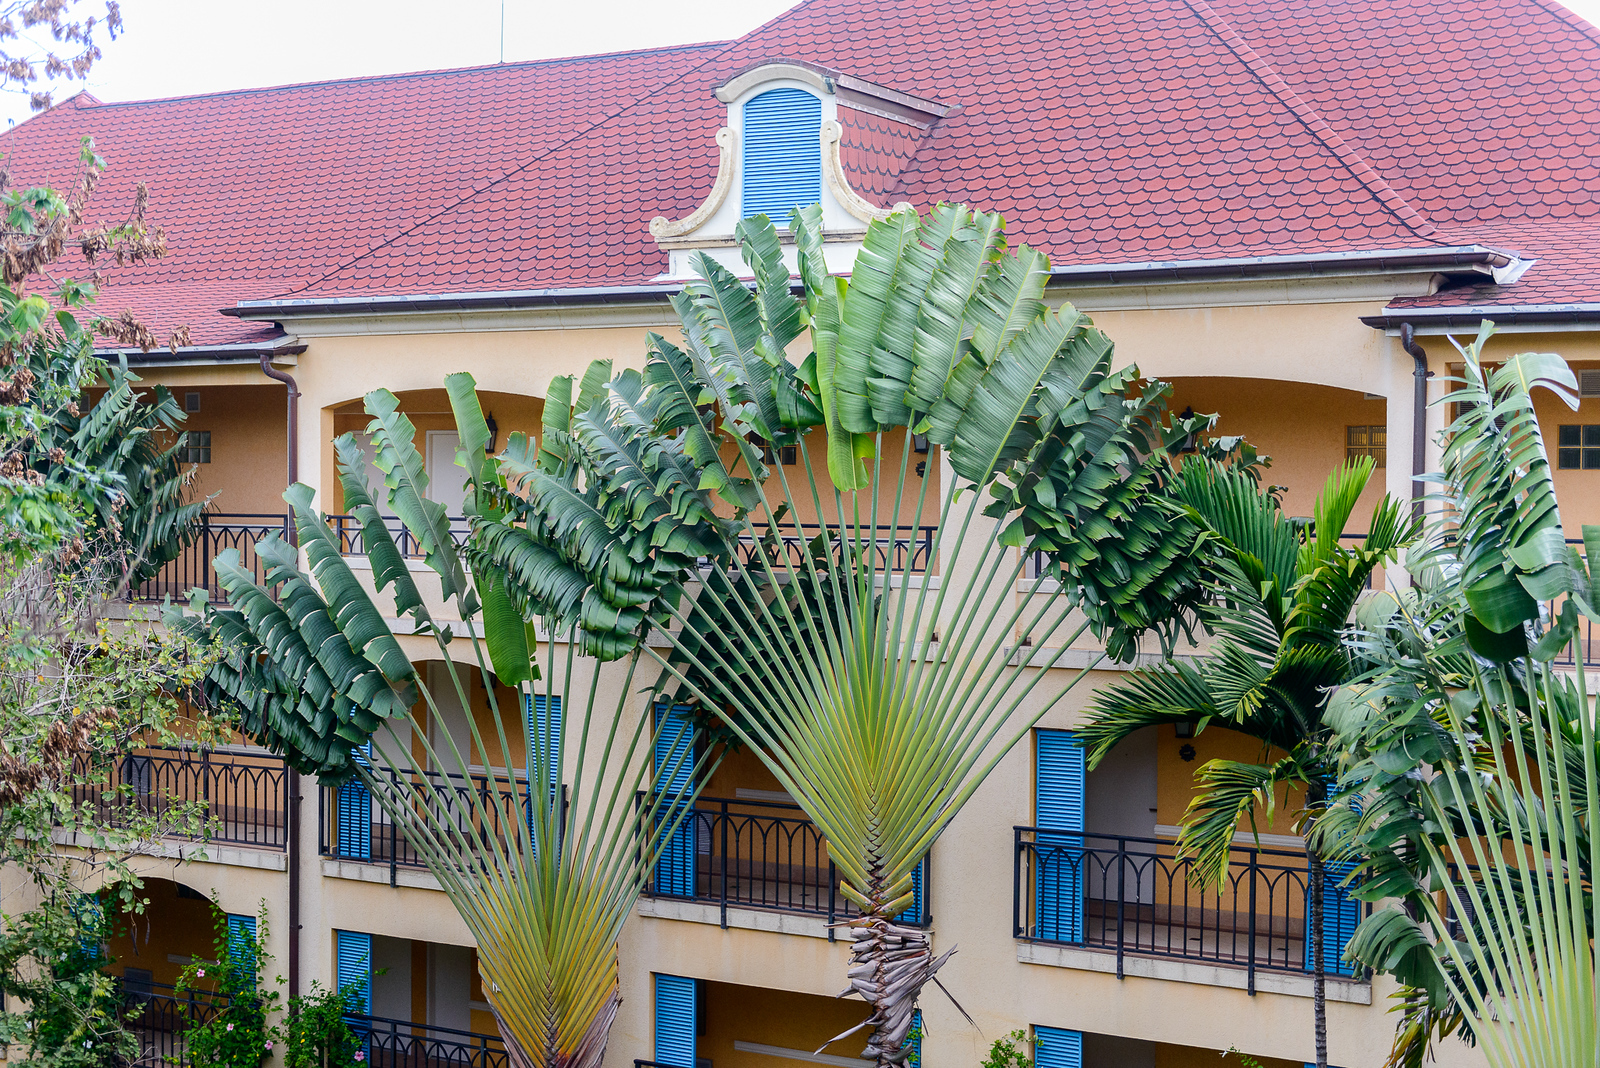 Fan type of palm tree in the French Village